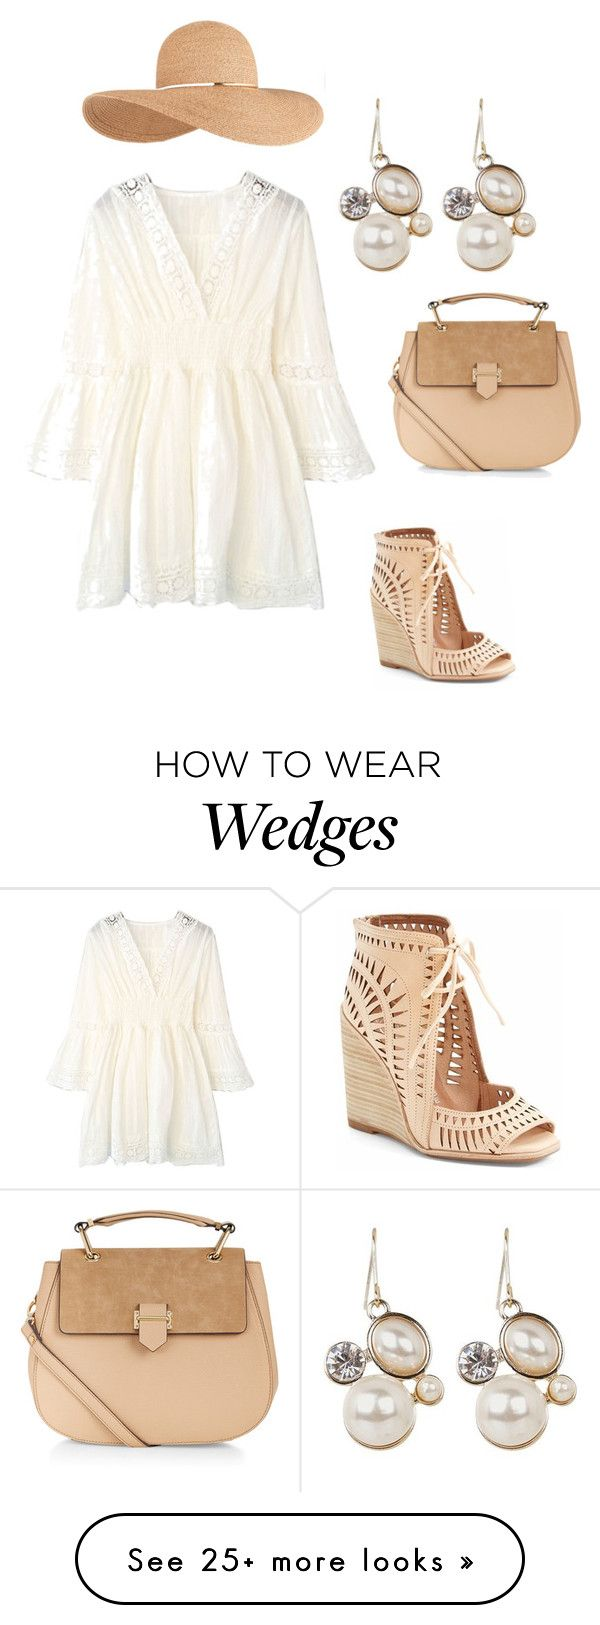 Jeffrey Campbell Shoes #fashion